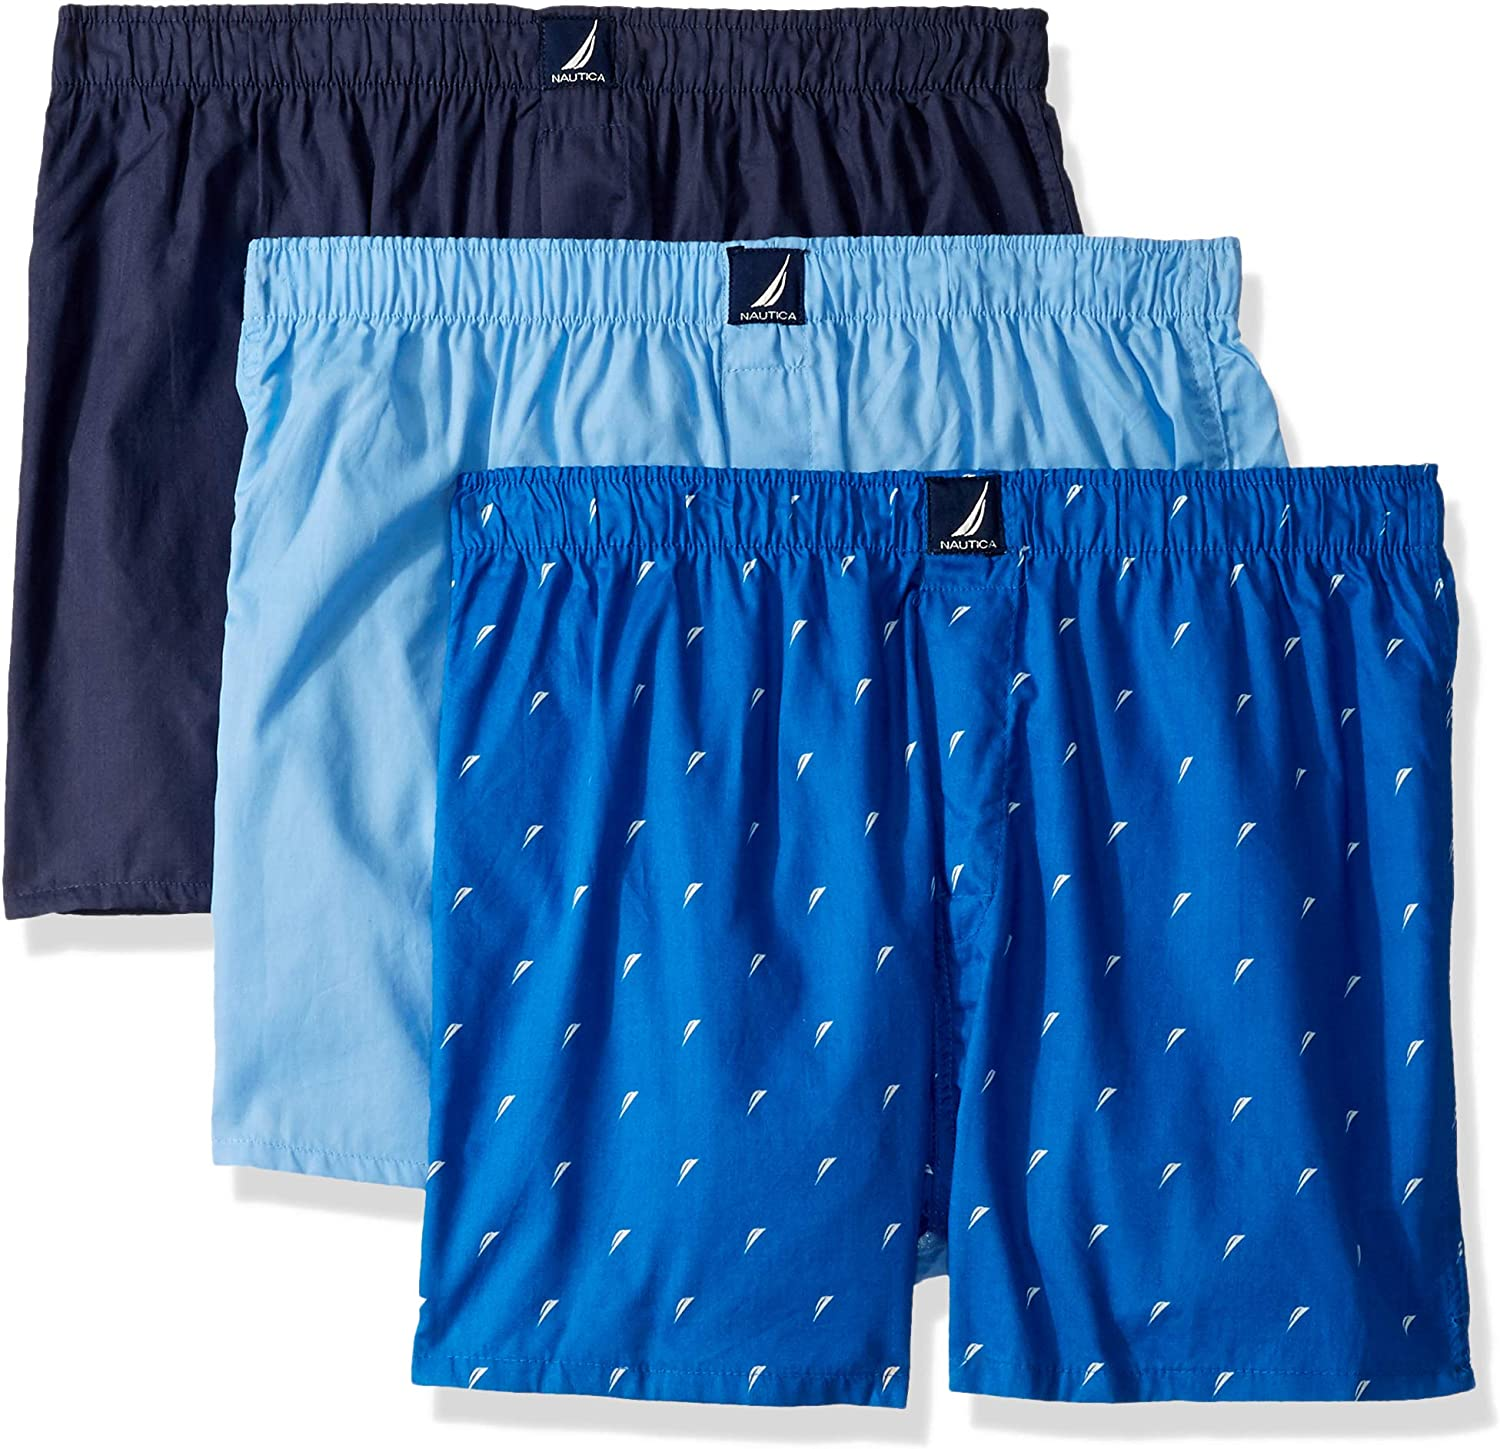 Nautica Men's Cotton Woven 3 Pack Boxer